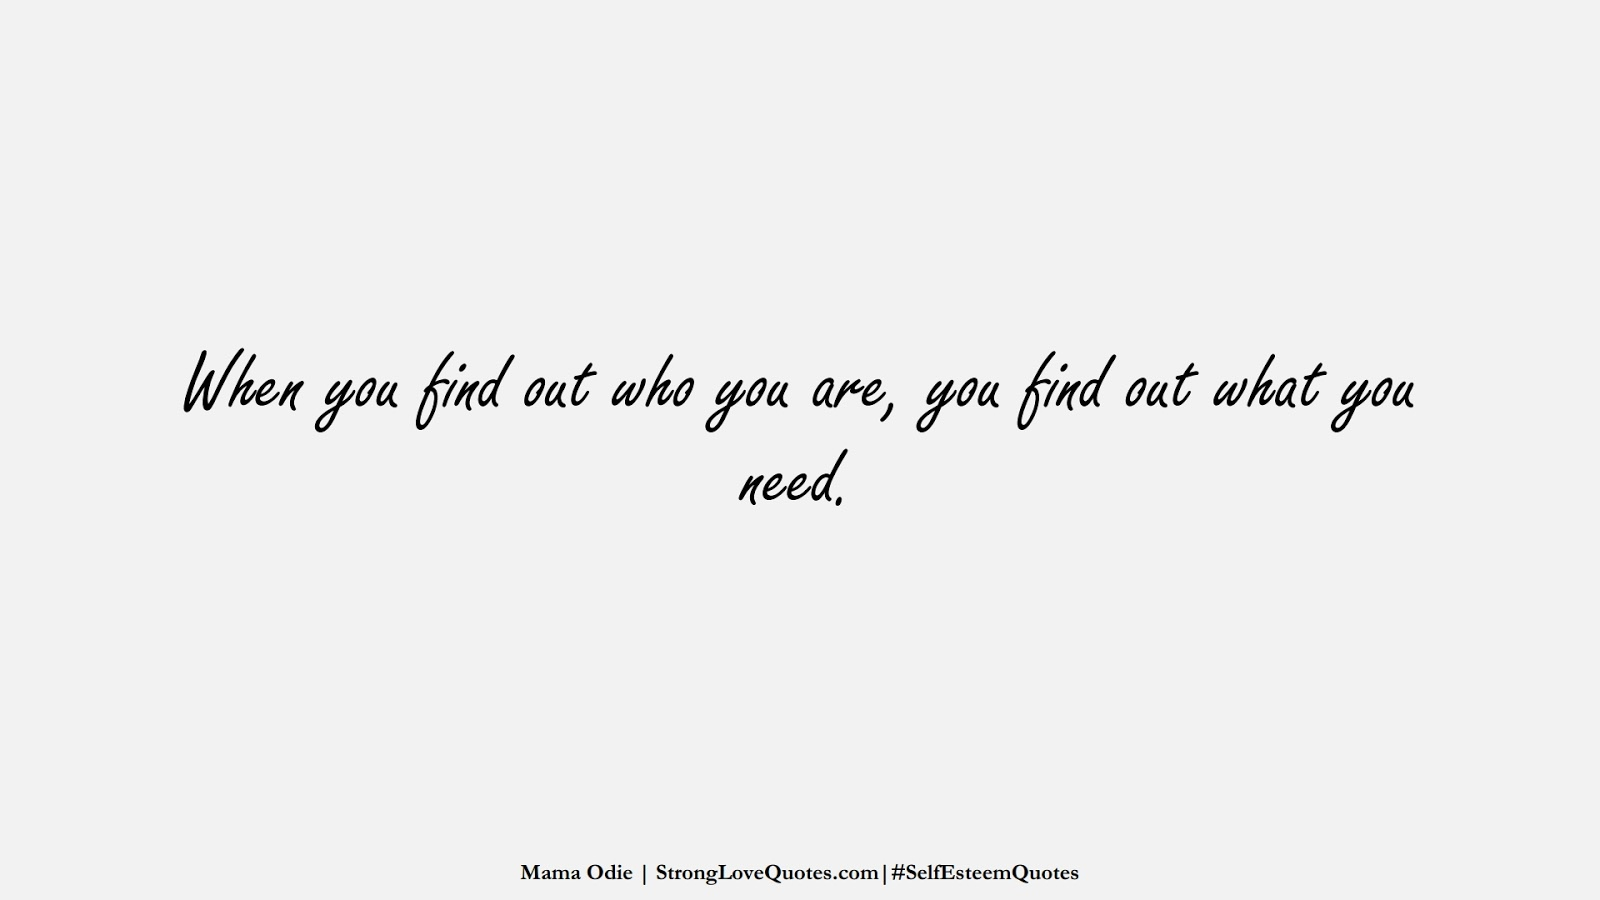 When you find out who you are, you find out what you need. (Mama Odie);  #SelfEsteemQuotes